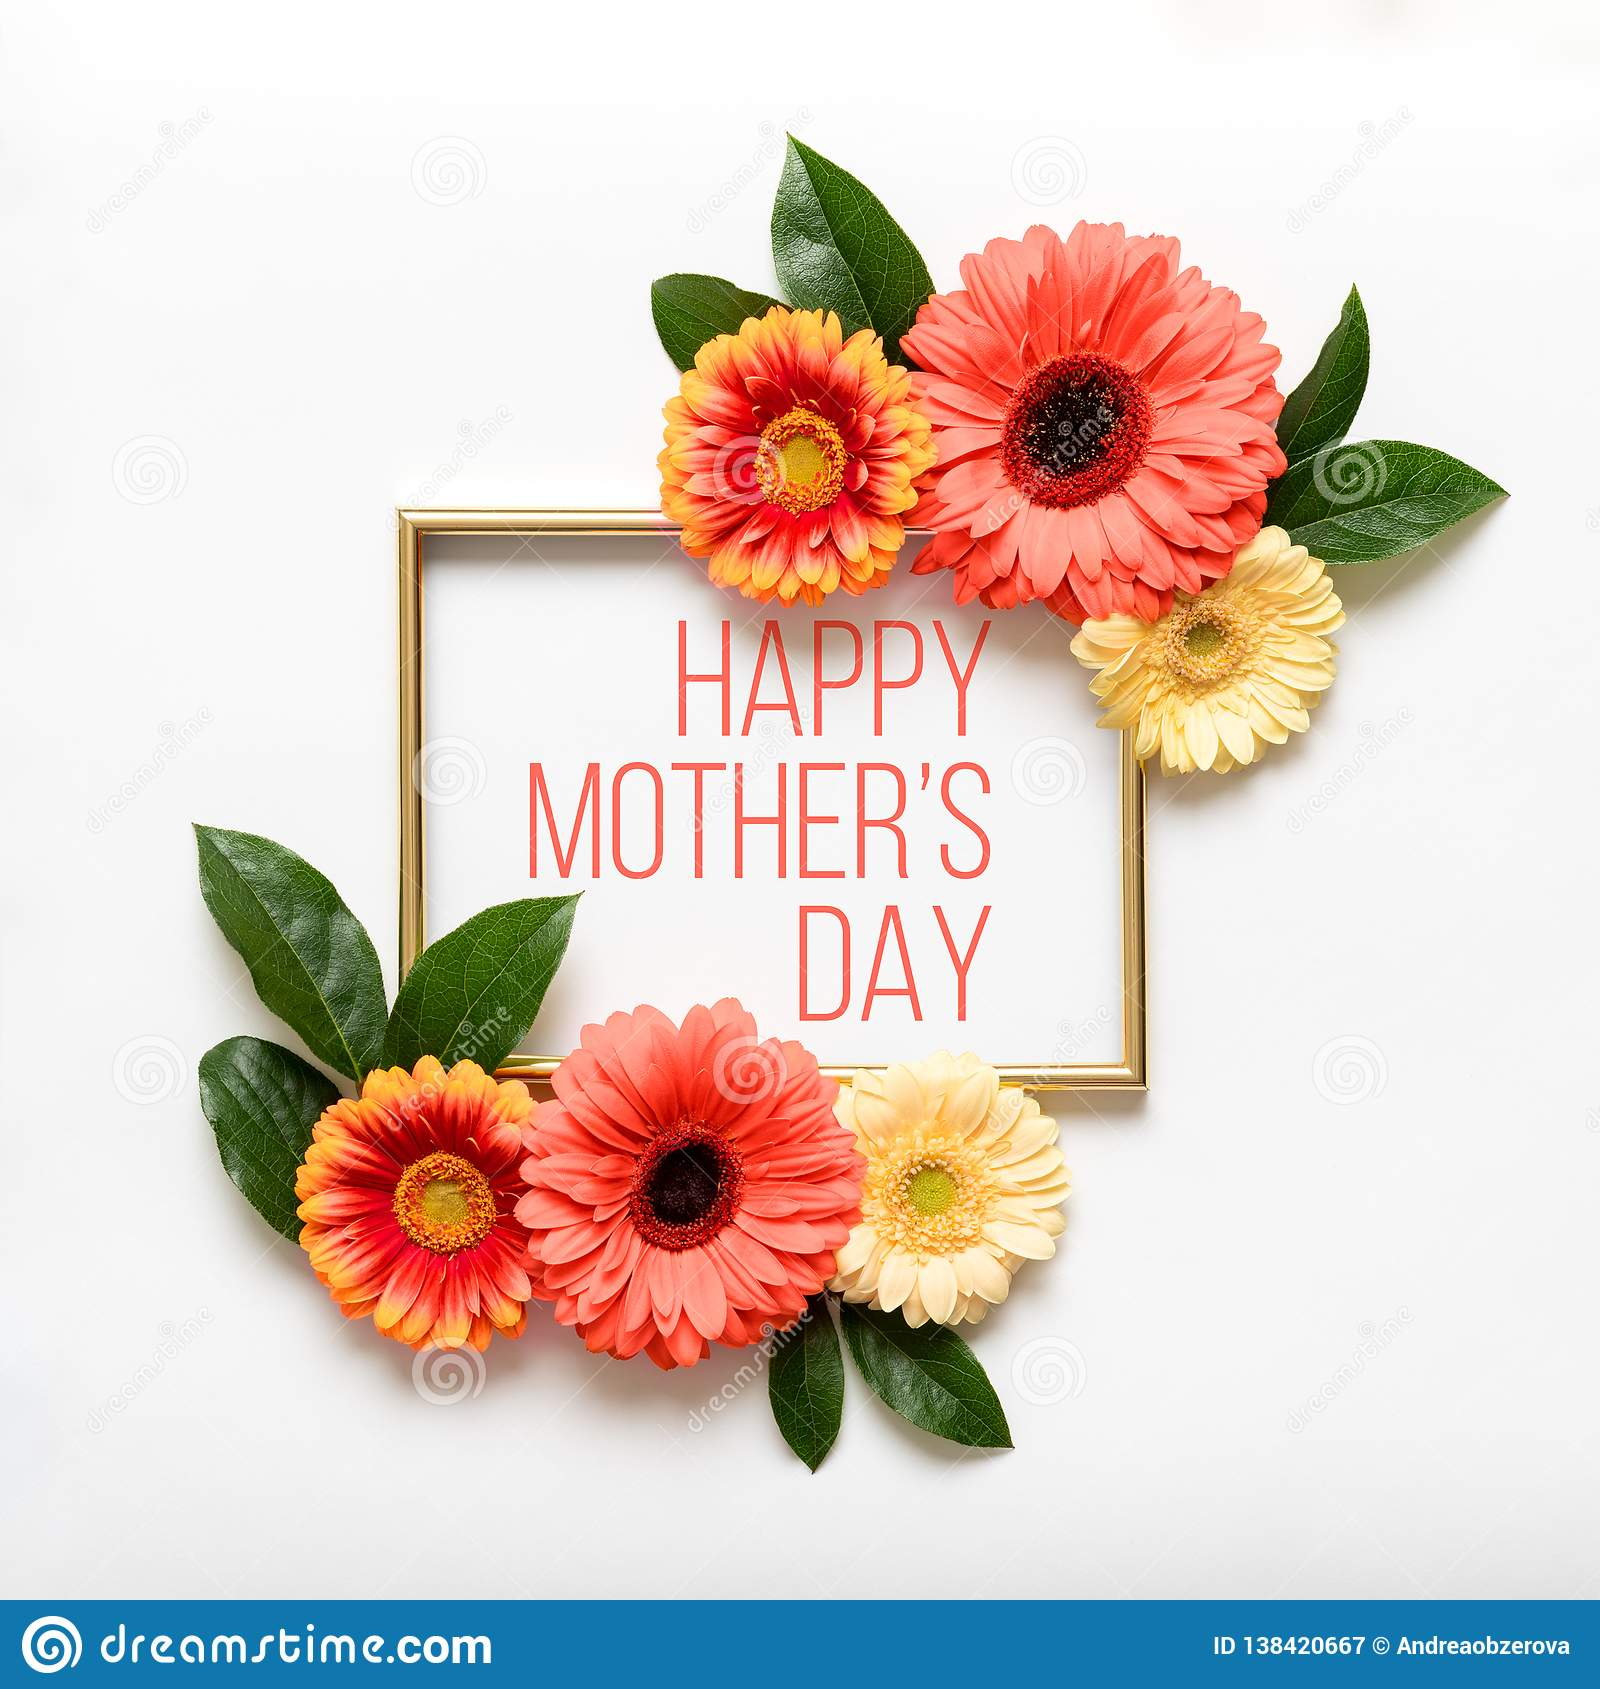 Happy Mother`s Day Living Coral Pantone Color Background. Flat lay greeting card with beautiful coral hue gerbera flowers.